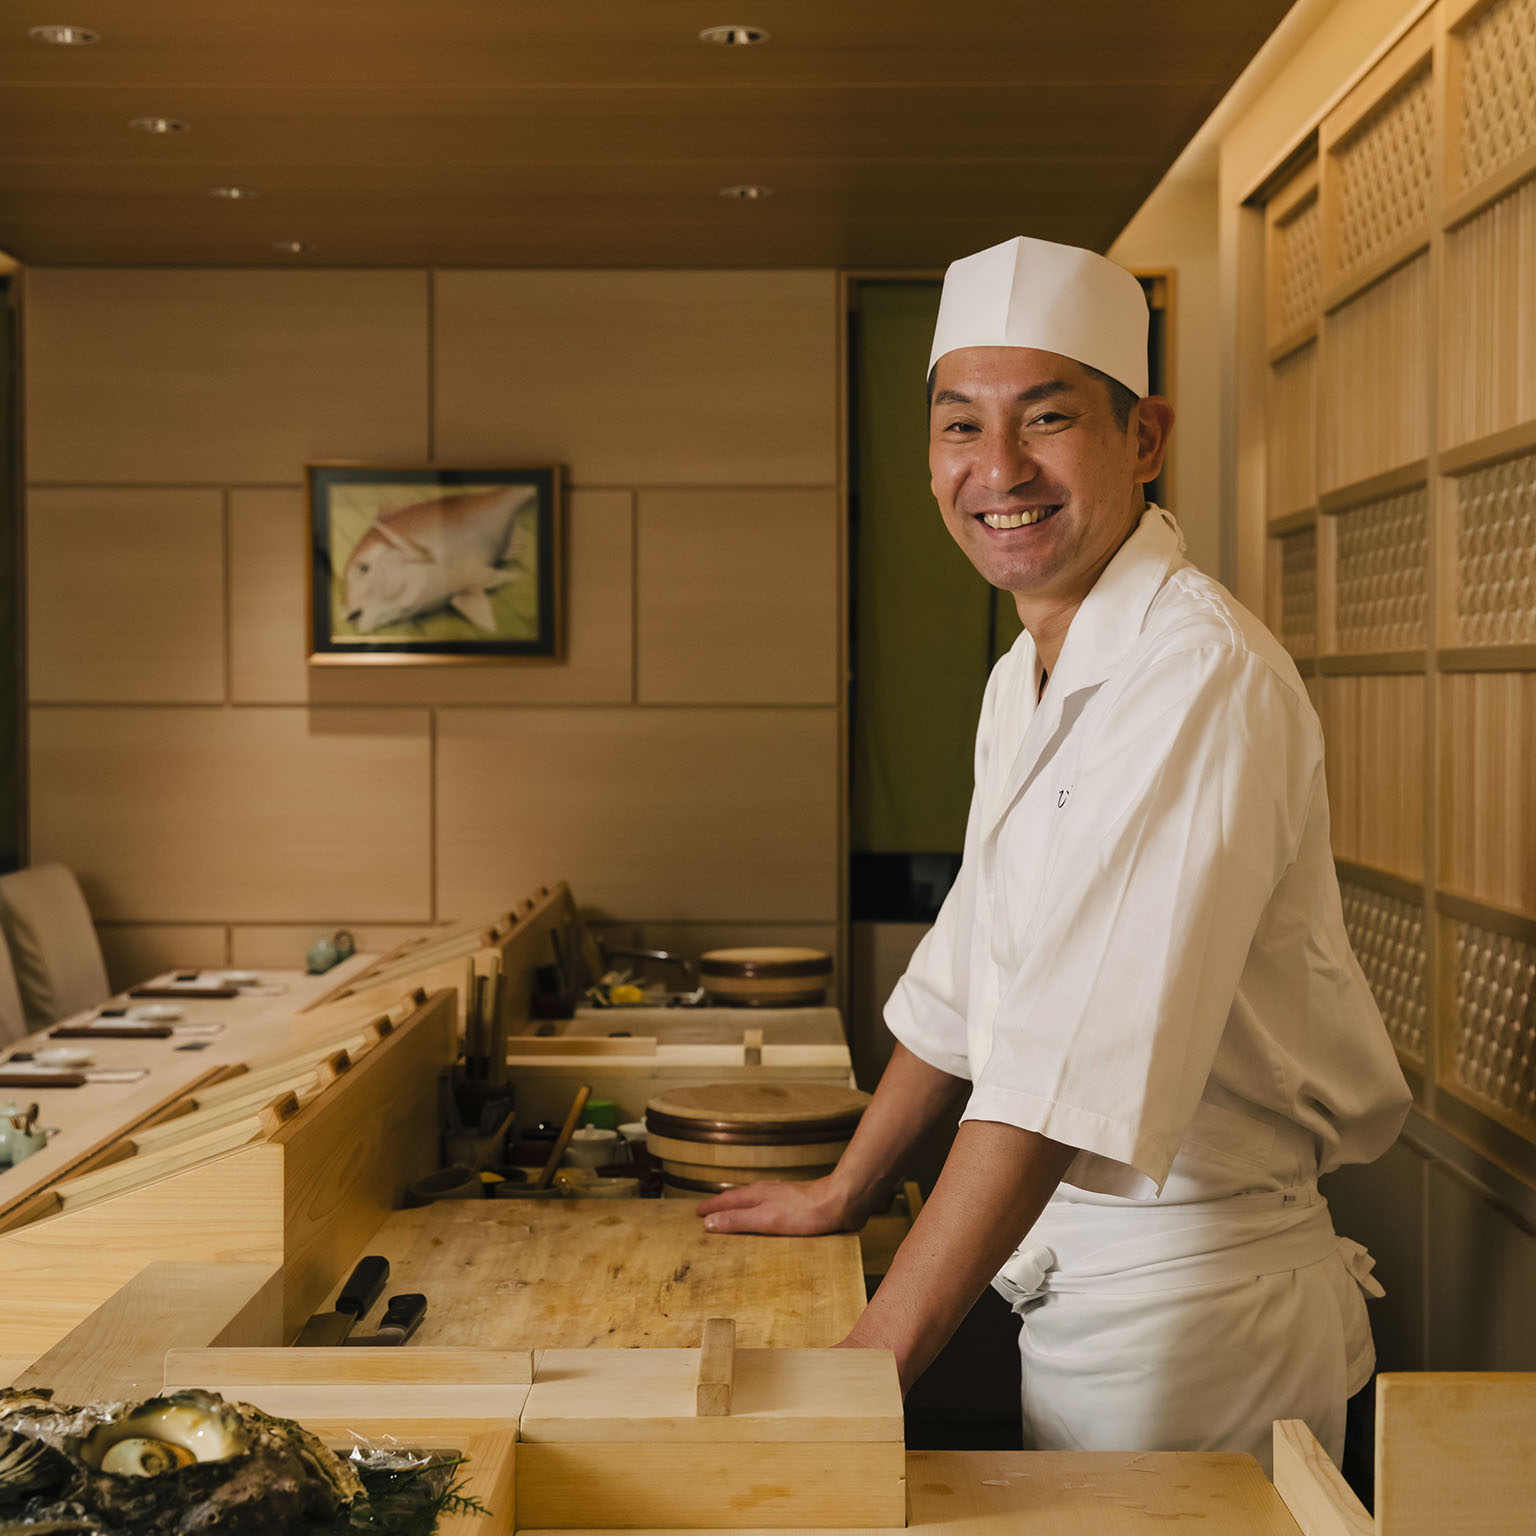 Beautiful sushi bar where the customers' needs come first